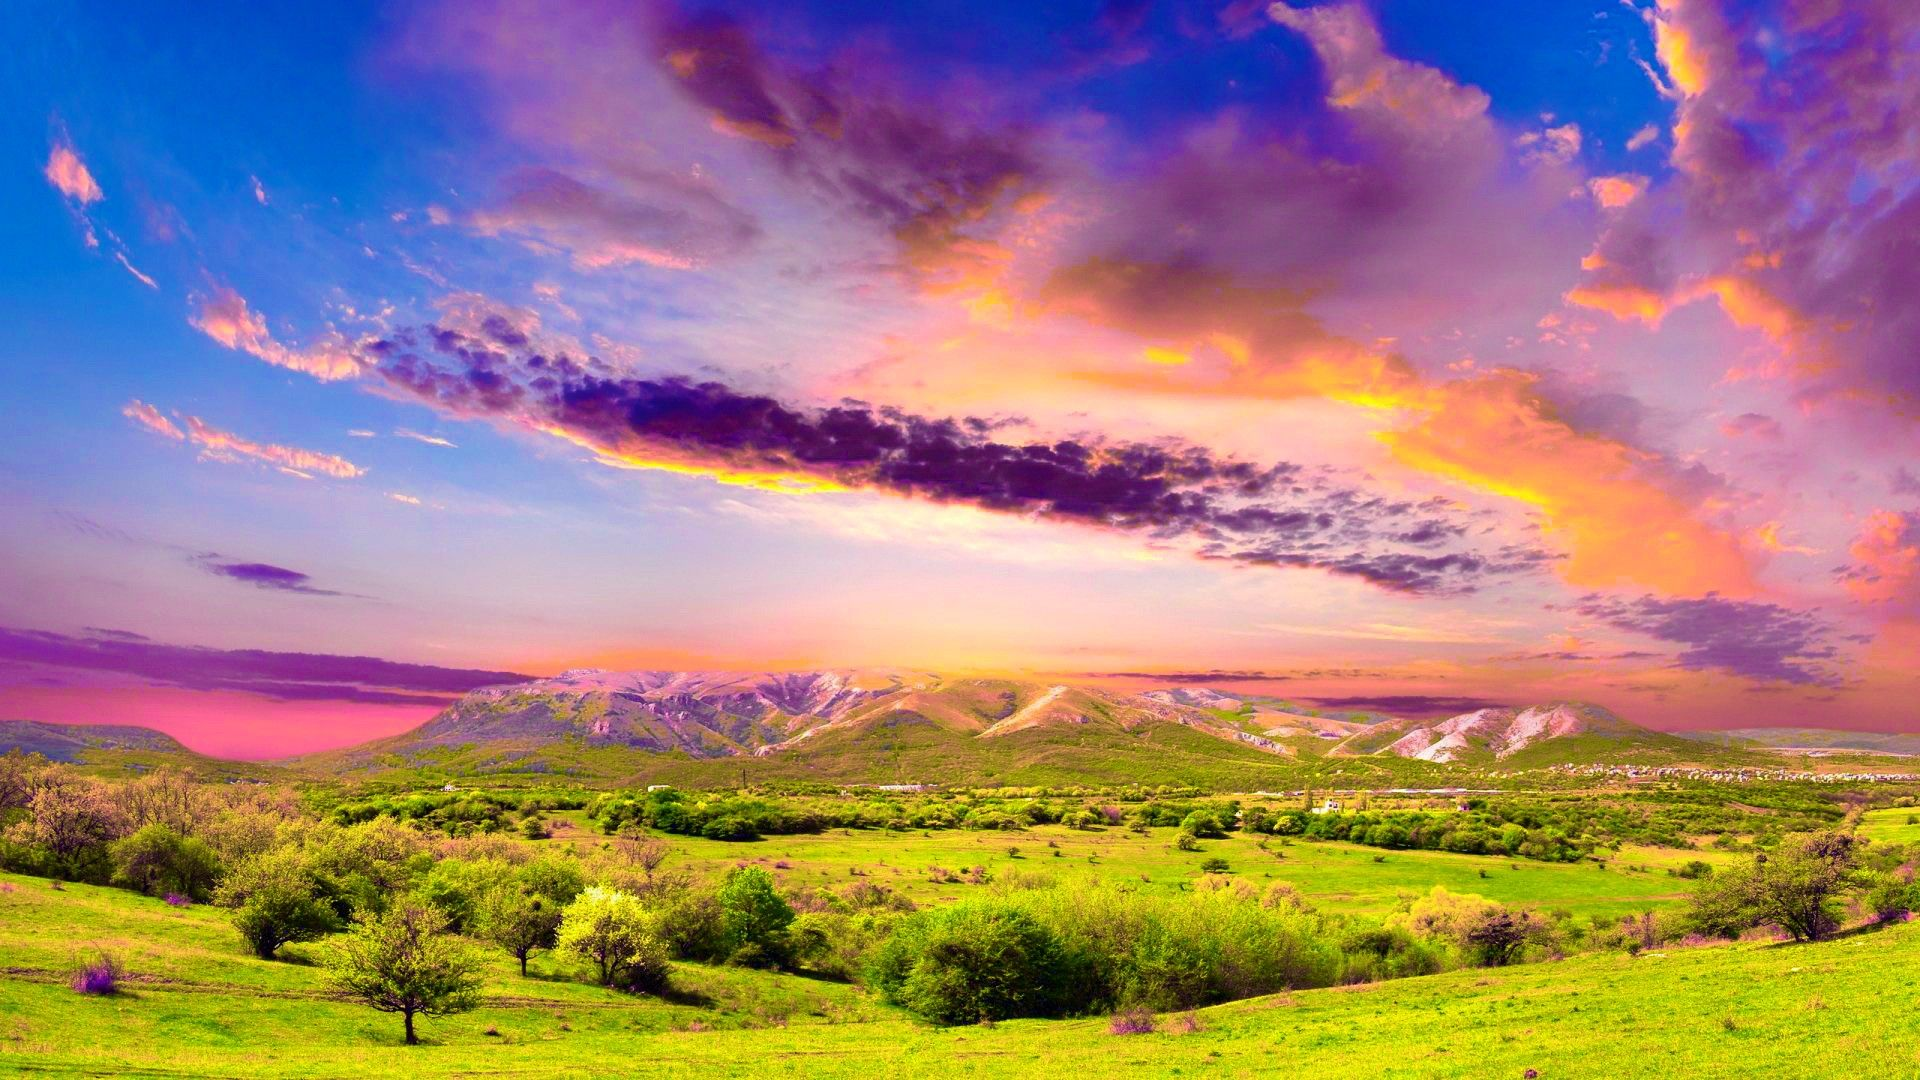 The green fields and pink skies